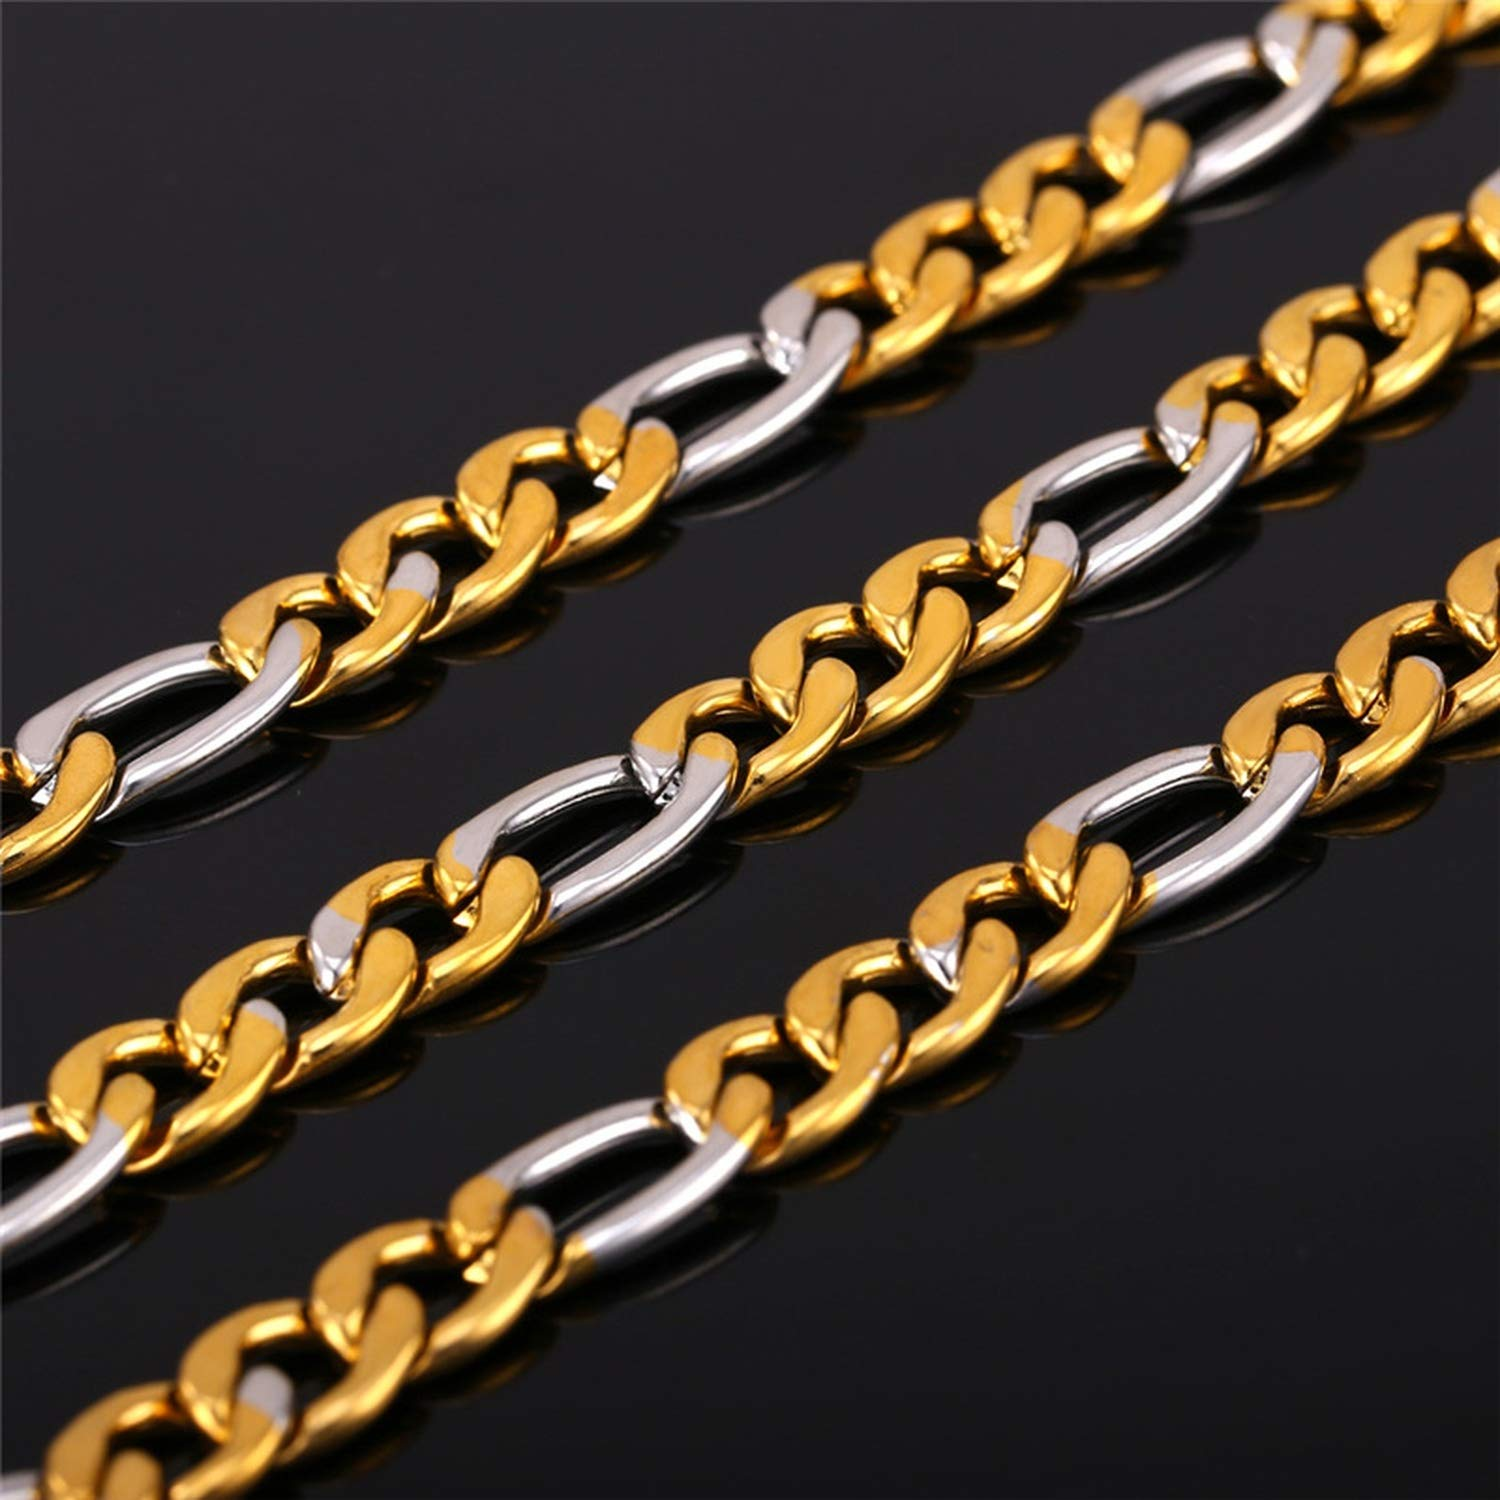 monicaexclusive Stainless Steel Necklace 46CM//55CM//66CM//71CM Two-Tone Gold Color Unique Design Hip Hop Figaro Chain Men